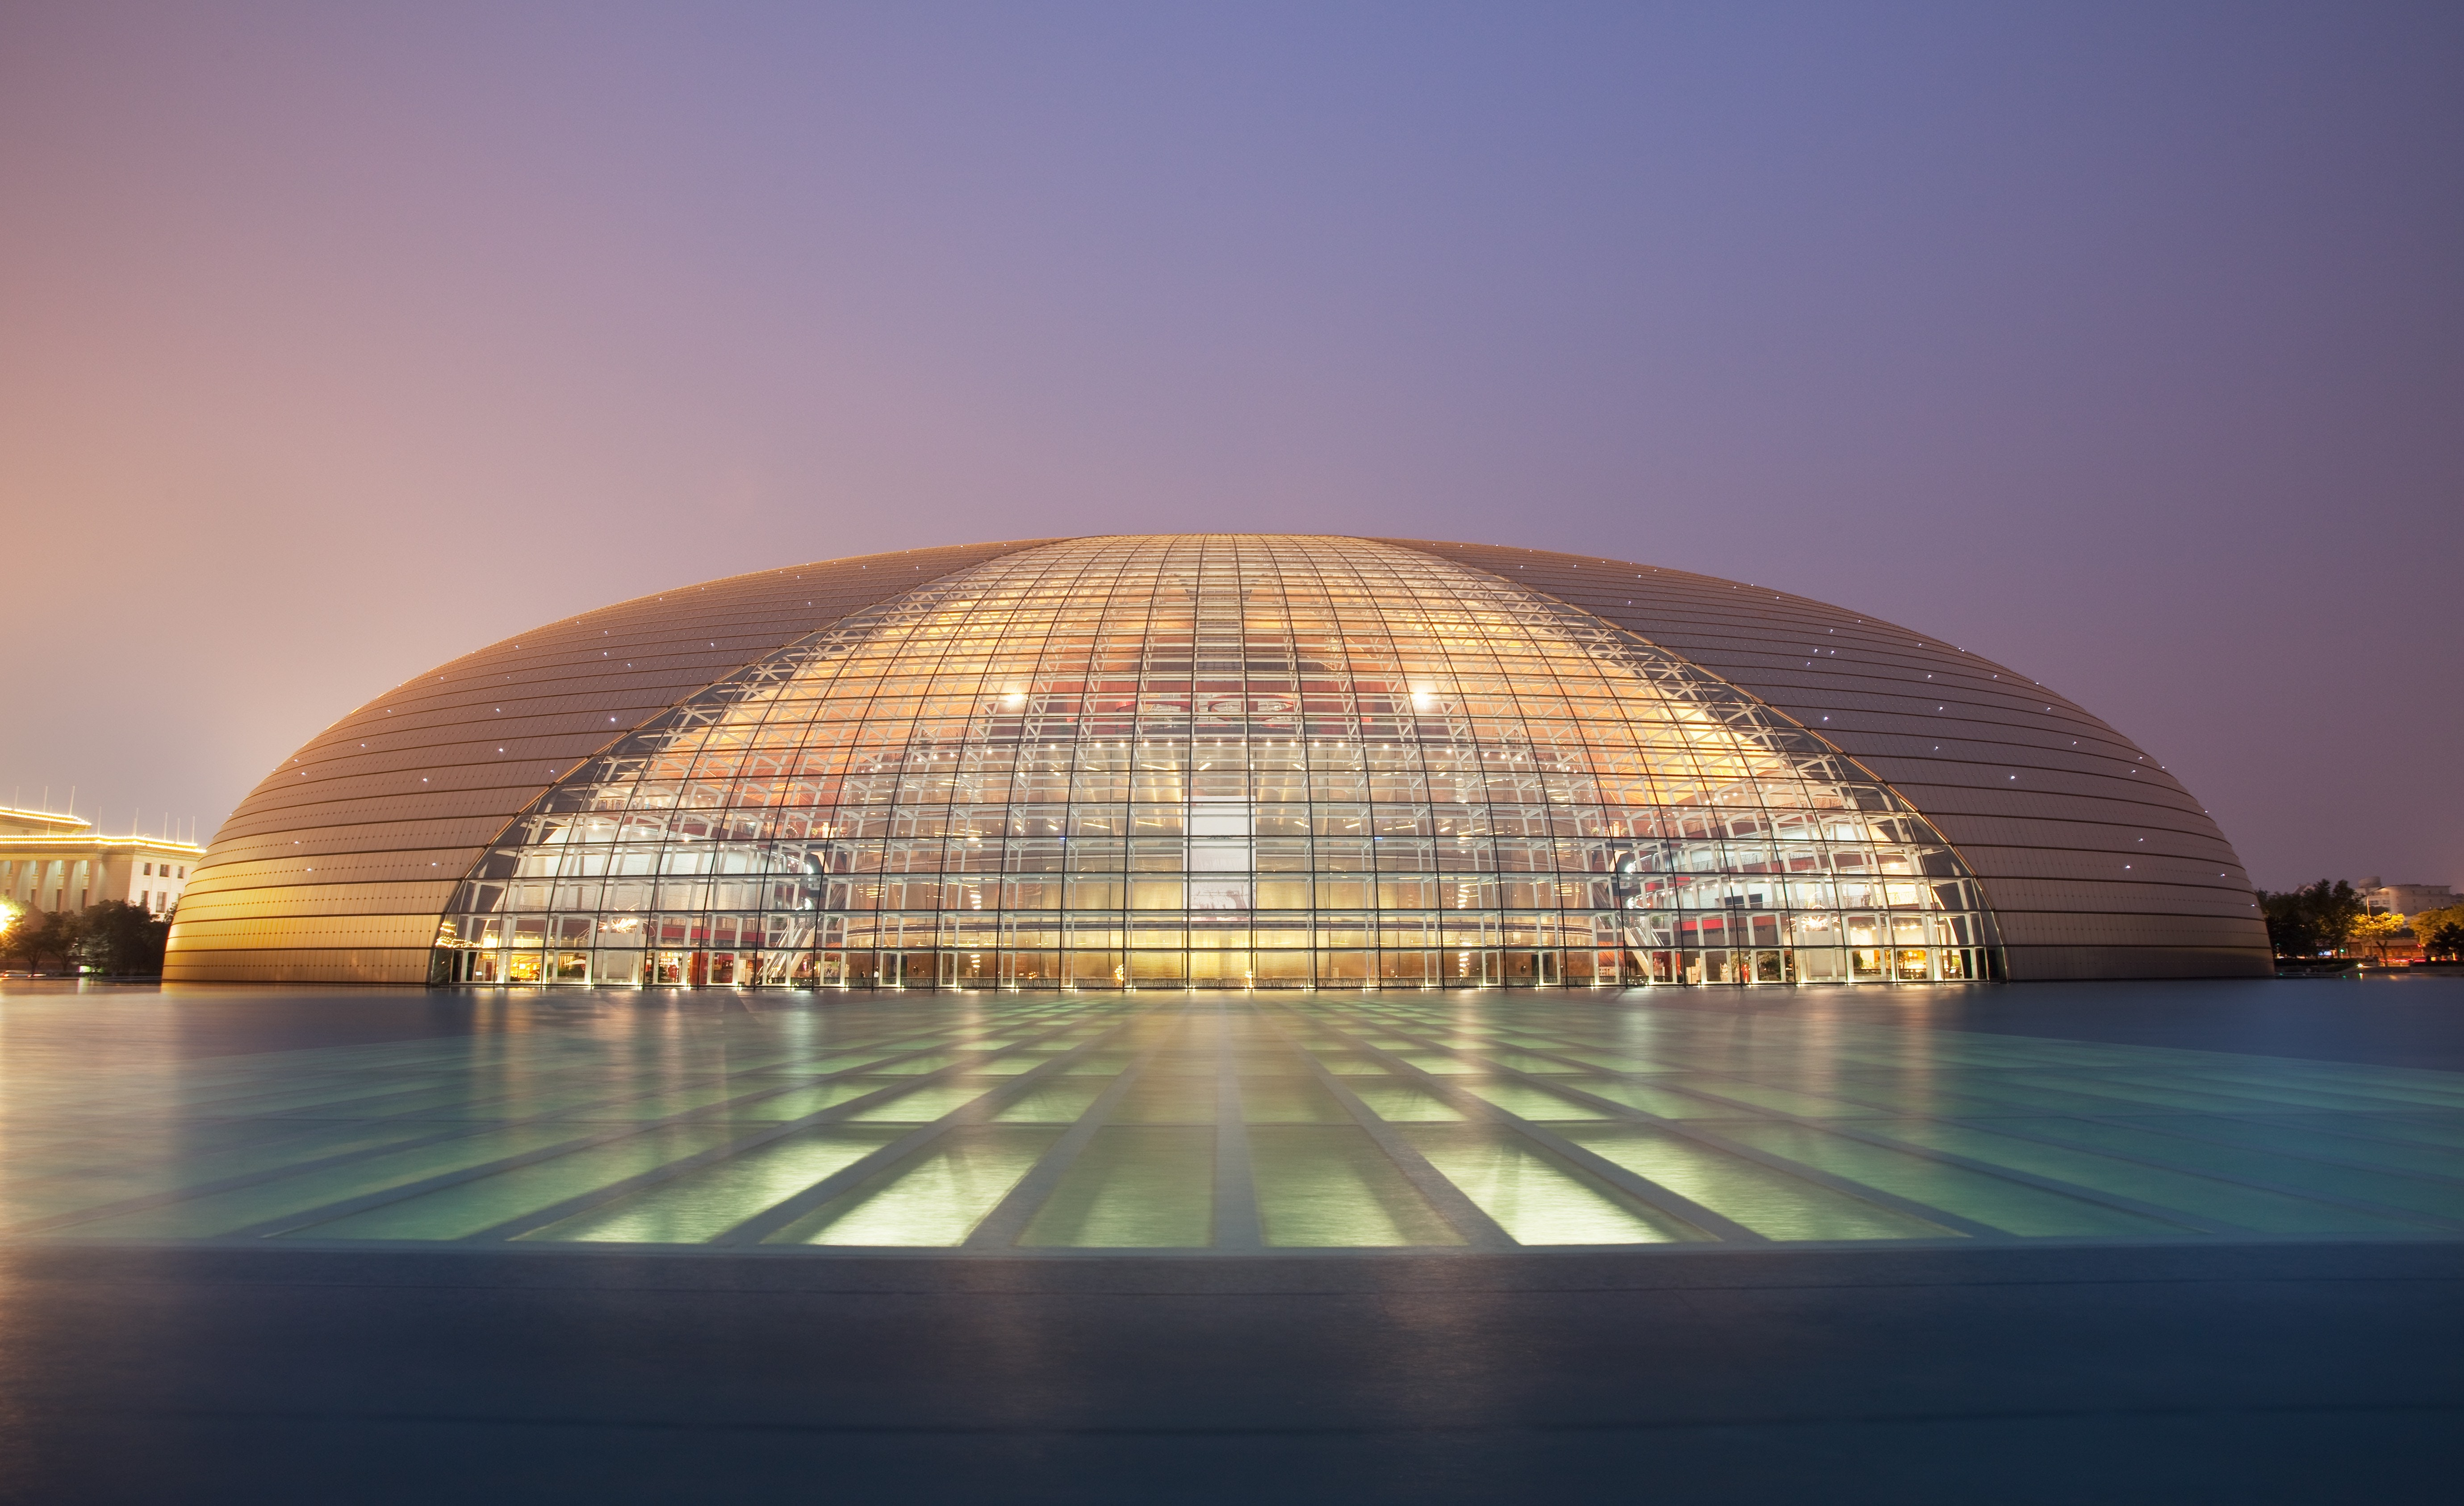 The National Center for the Performing Arts is also known as the Beijing National Grand Theatre.